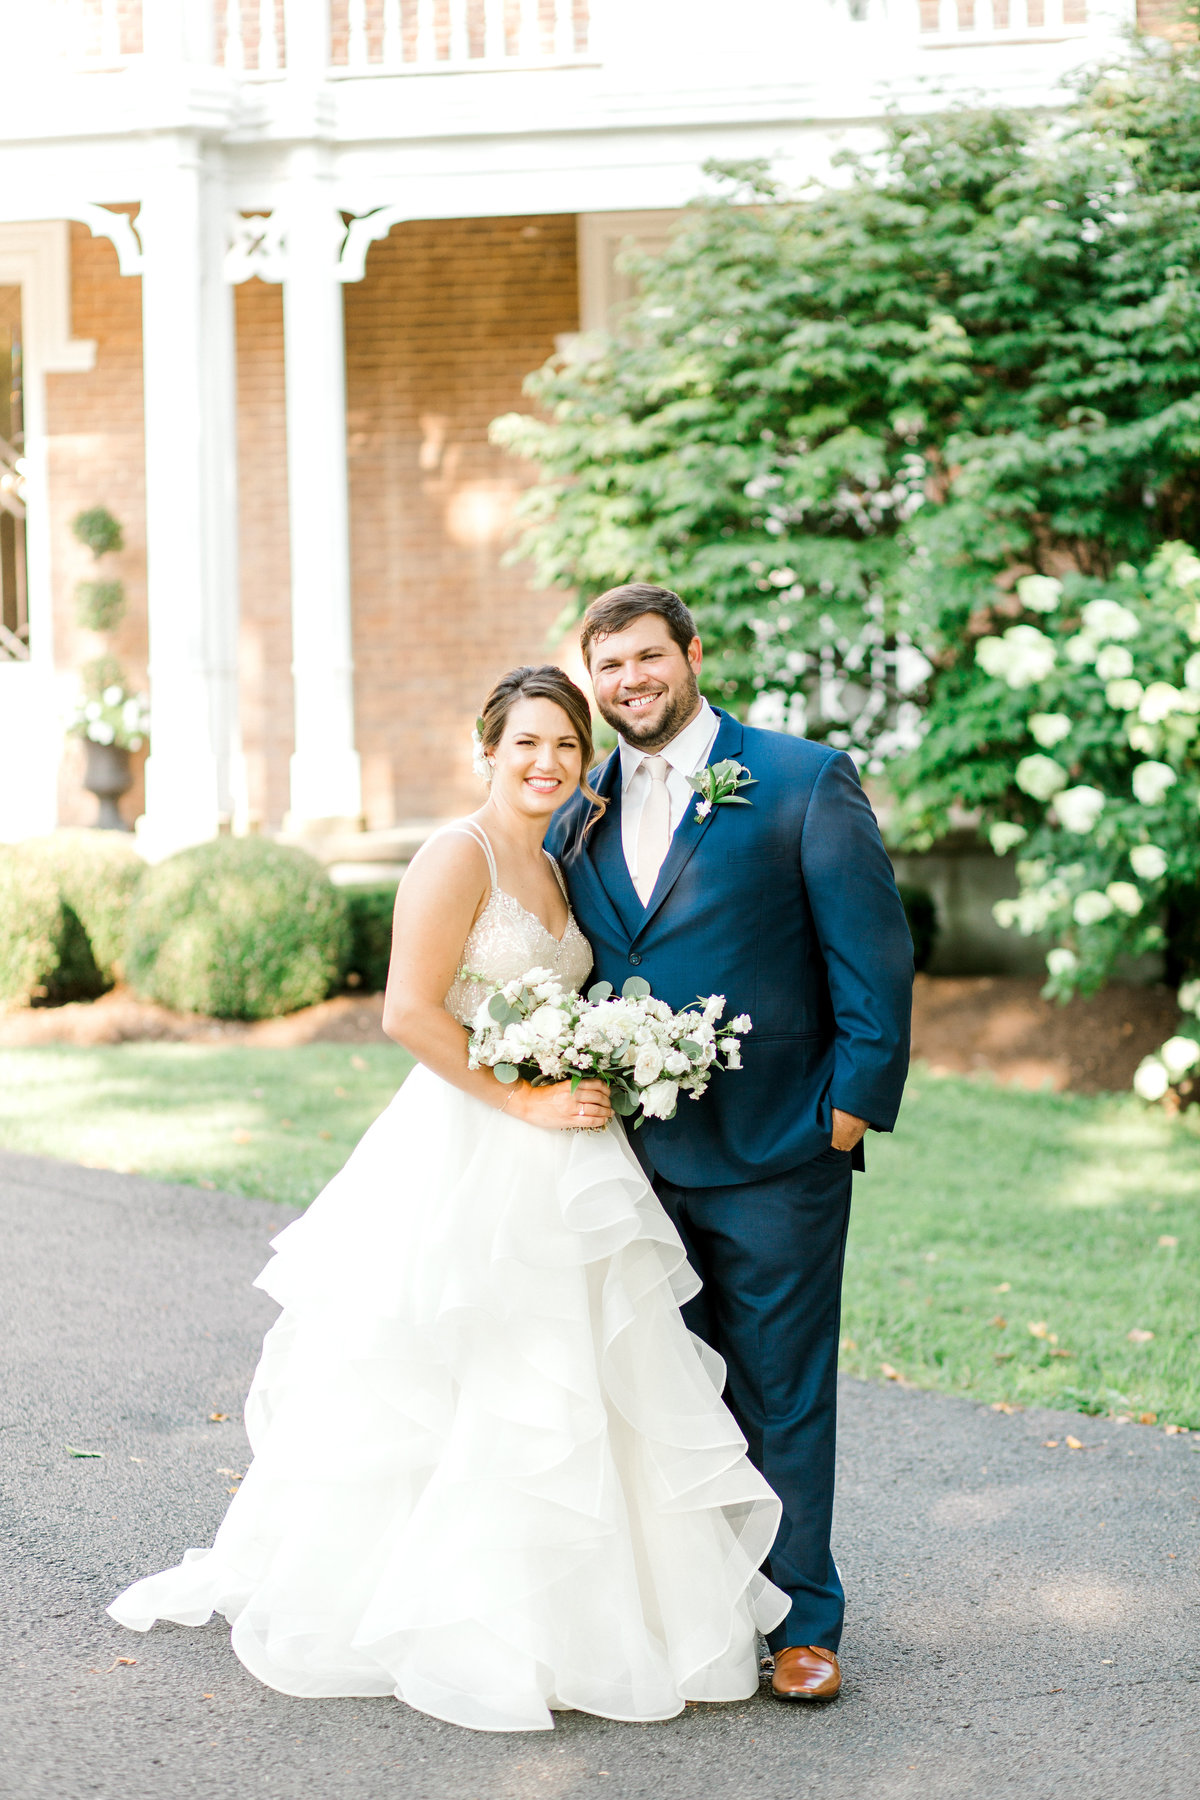 Warrenwood Manor - Kentucky Wedding Venue - Photo by Leanne Hunley 00068